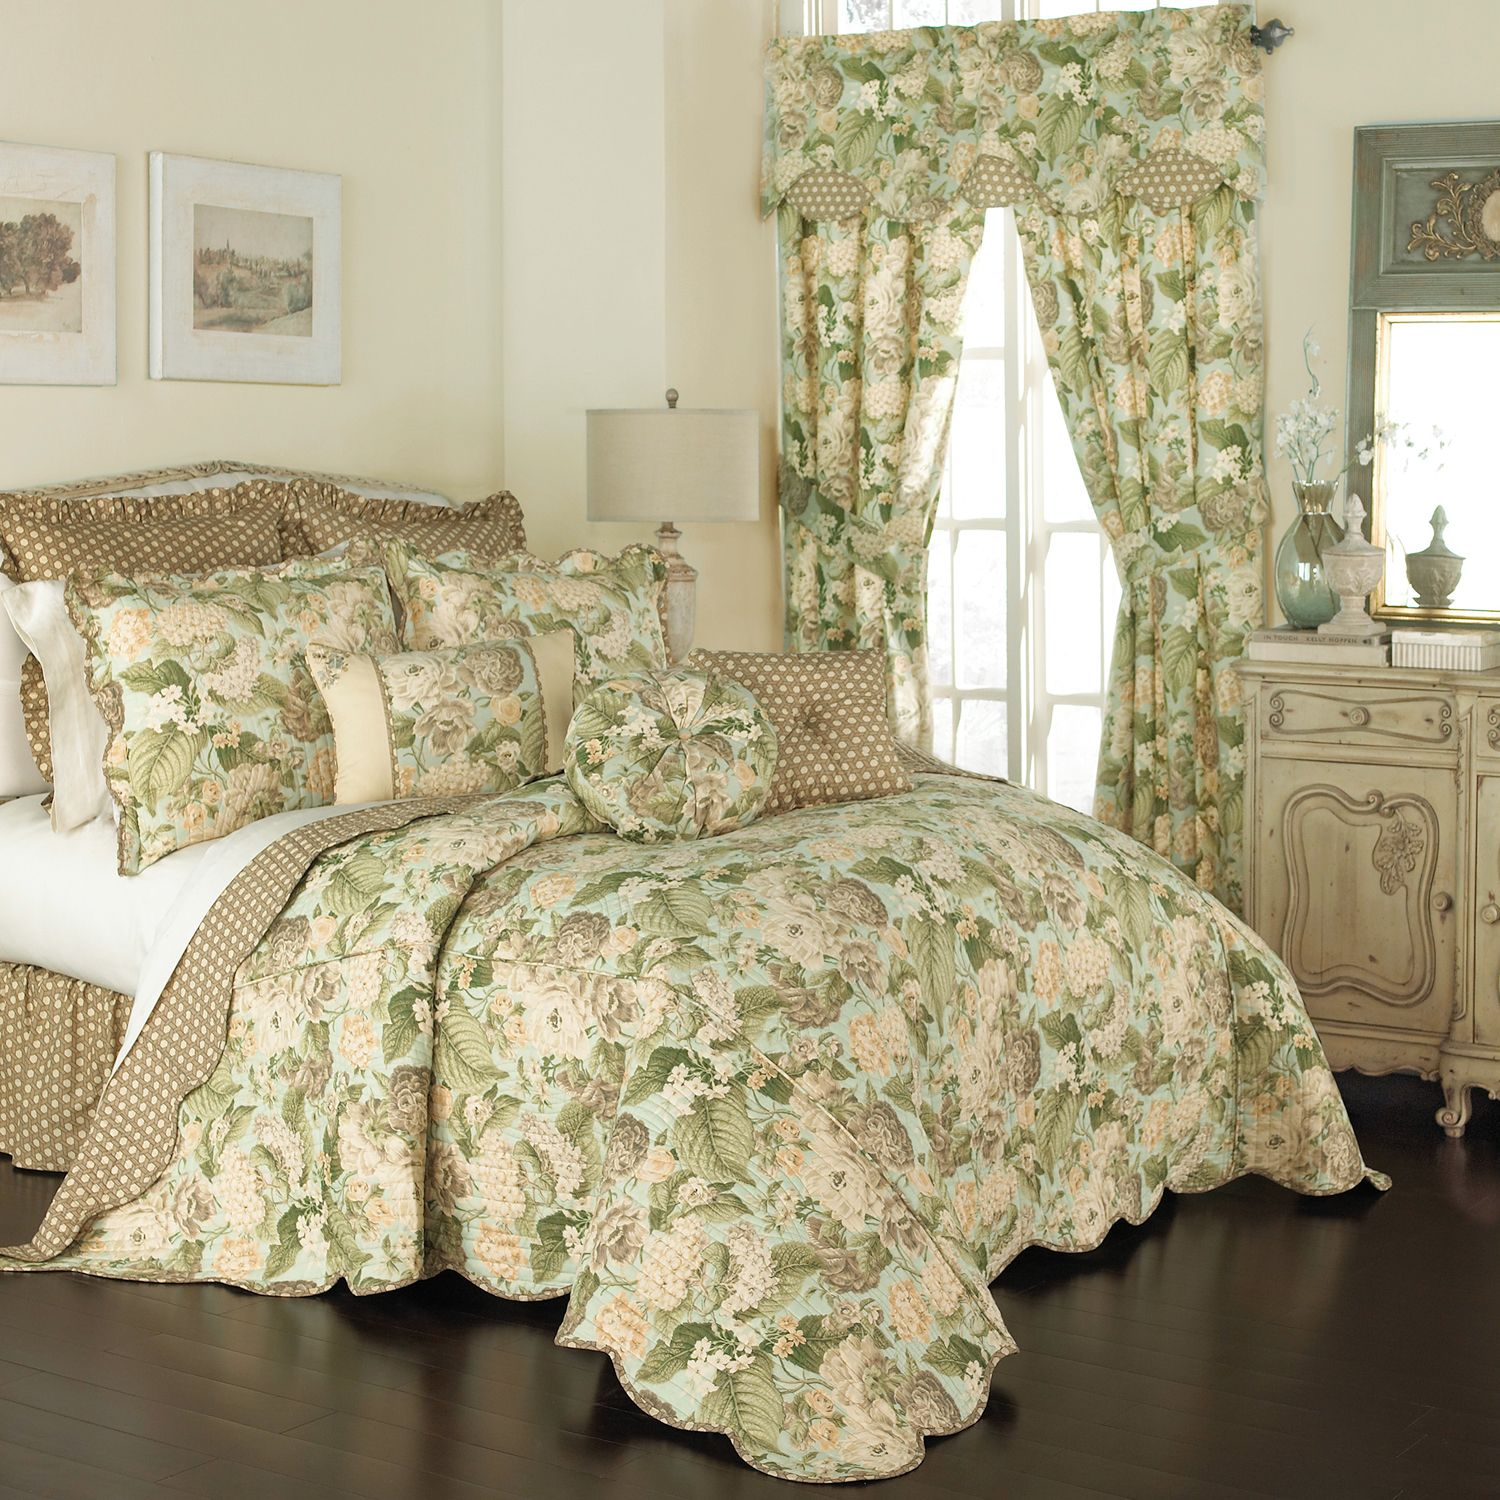 waverly garden glory bedspread collection - Waverly Bedding